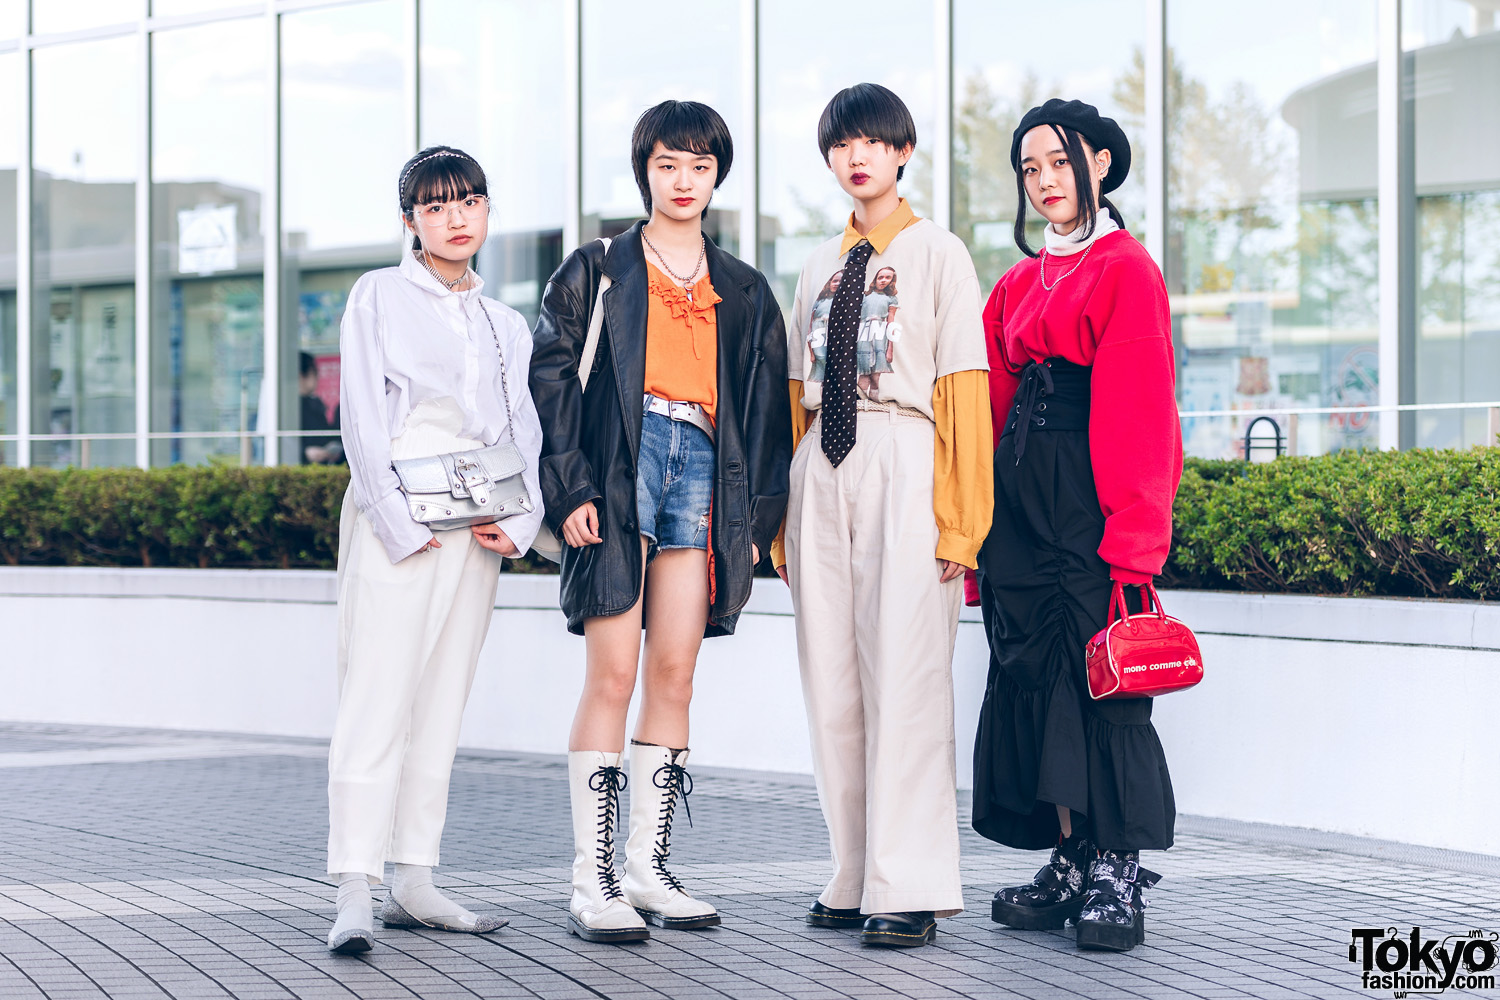 Tokyo Girls Street Styles w/ The Shining Twins, Leather Jacket, Necktie, Berrycupide, Mono Comme Ca, RRR & Vintage